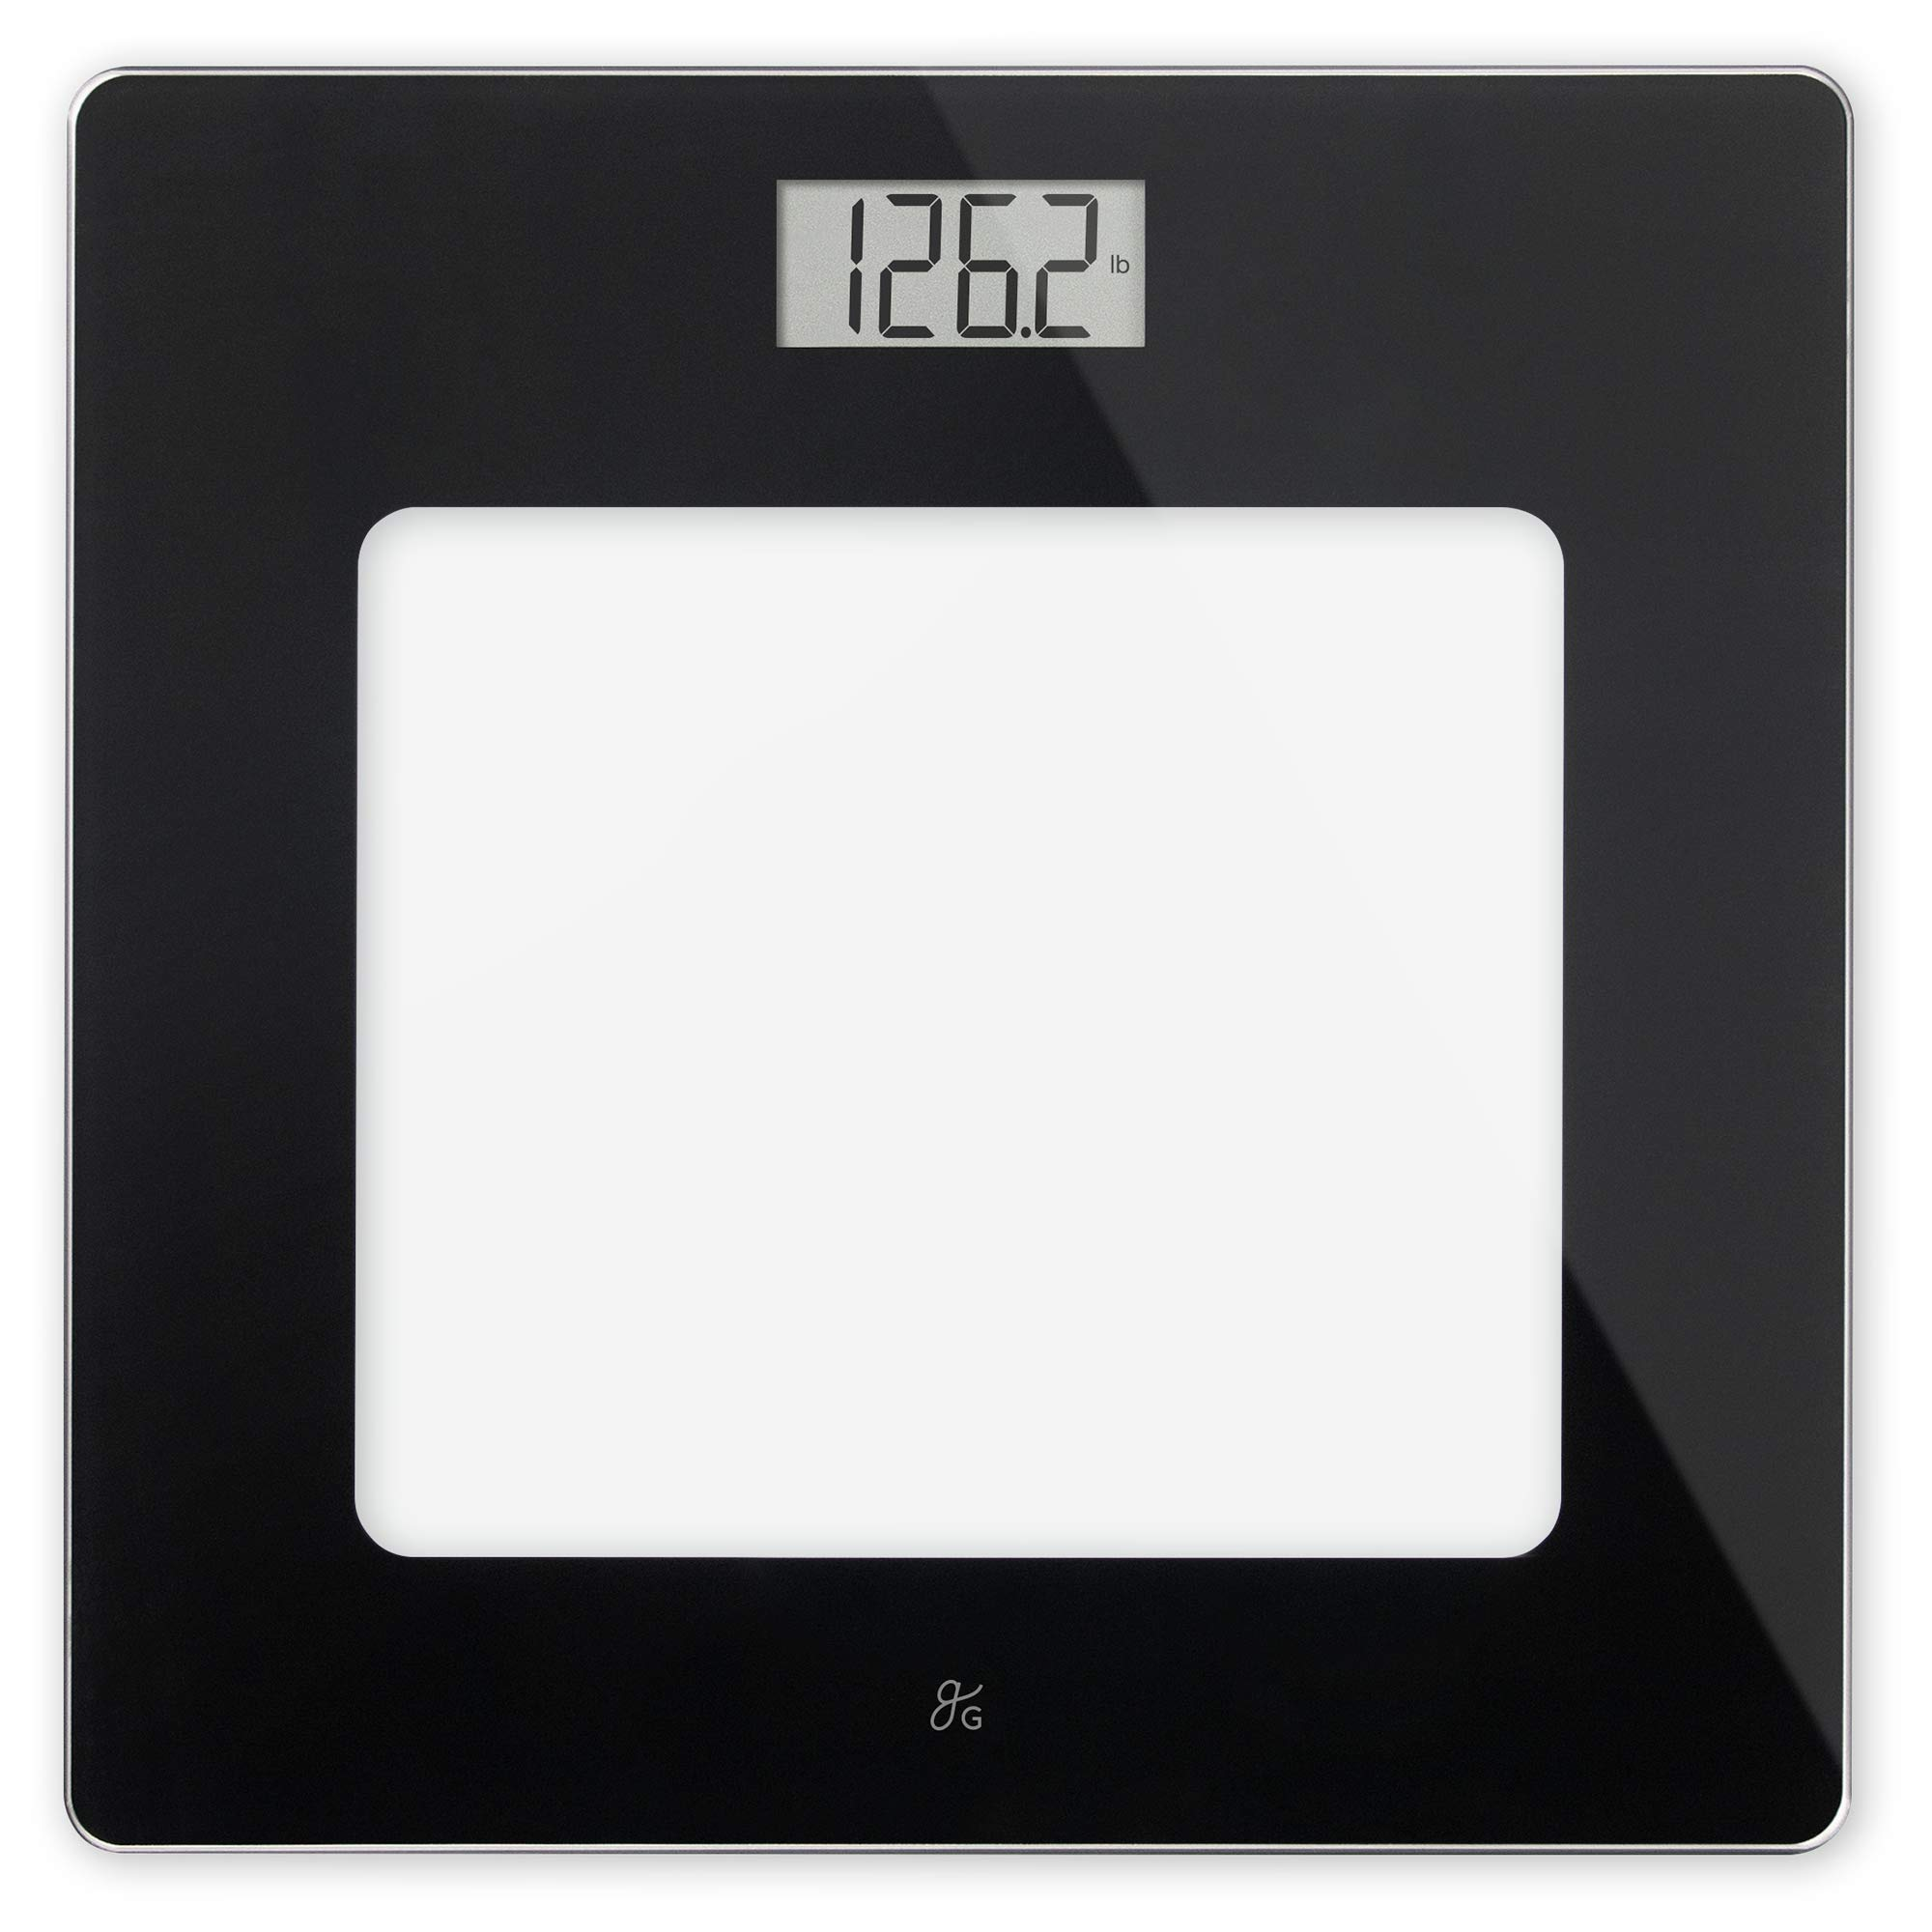 GreaterGoods Bathroom Scale, Digital Body Weight Scale, Glass Top Scale, Pounds and Kilograms by Greater Goods